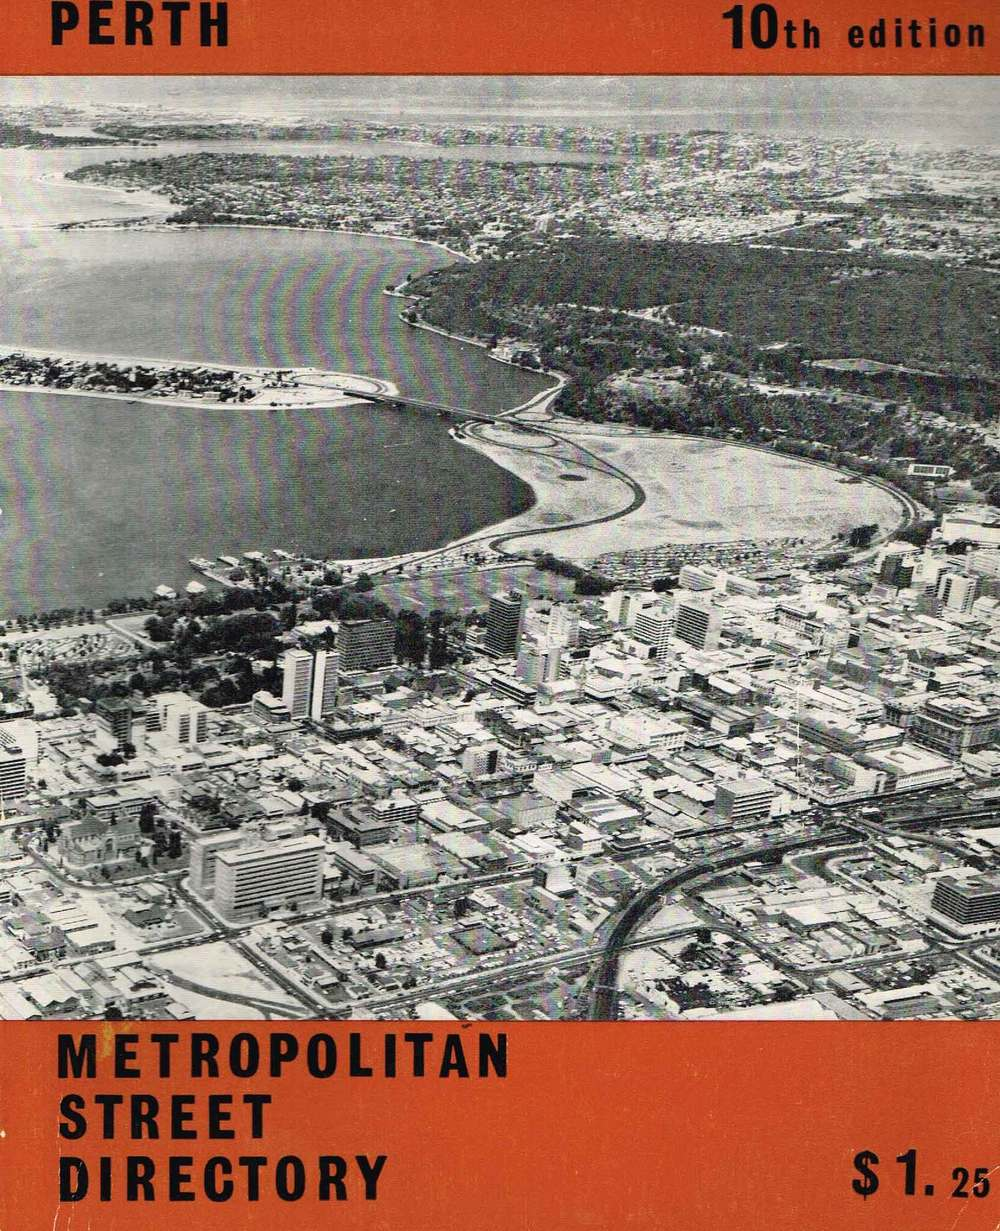 Perth-Metropolitan-Street-Directory-10th-Edition